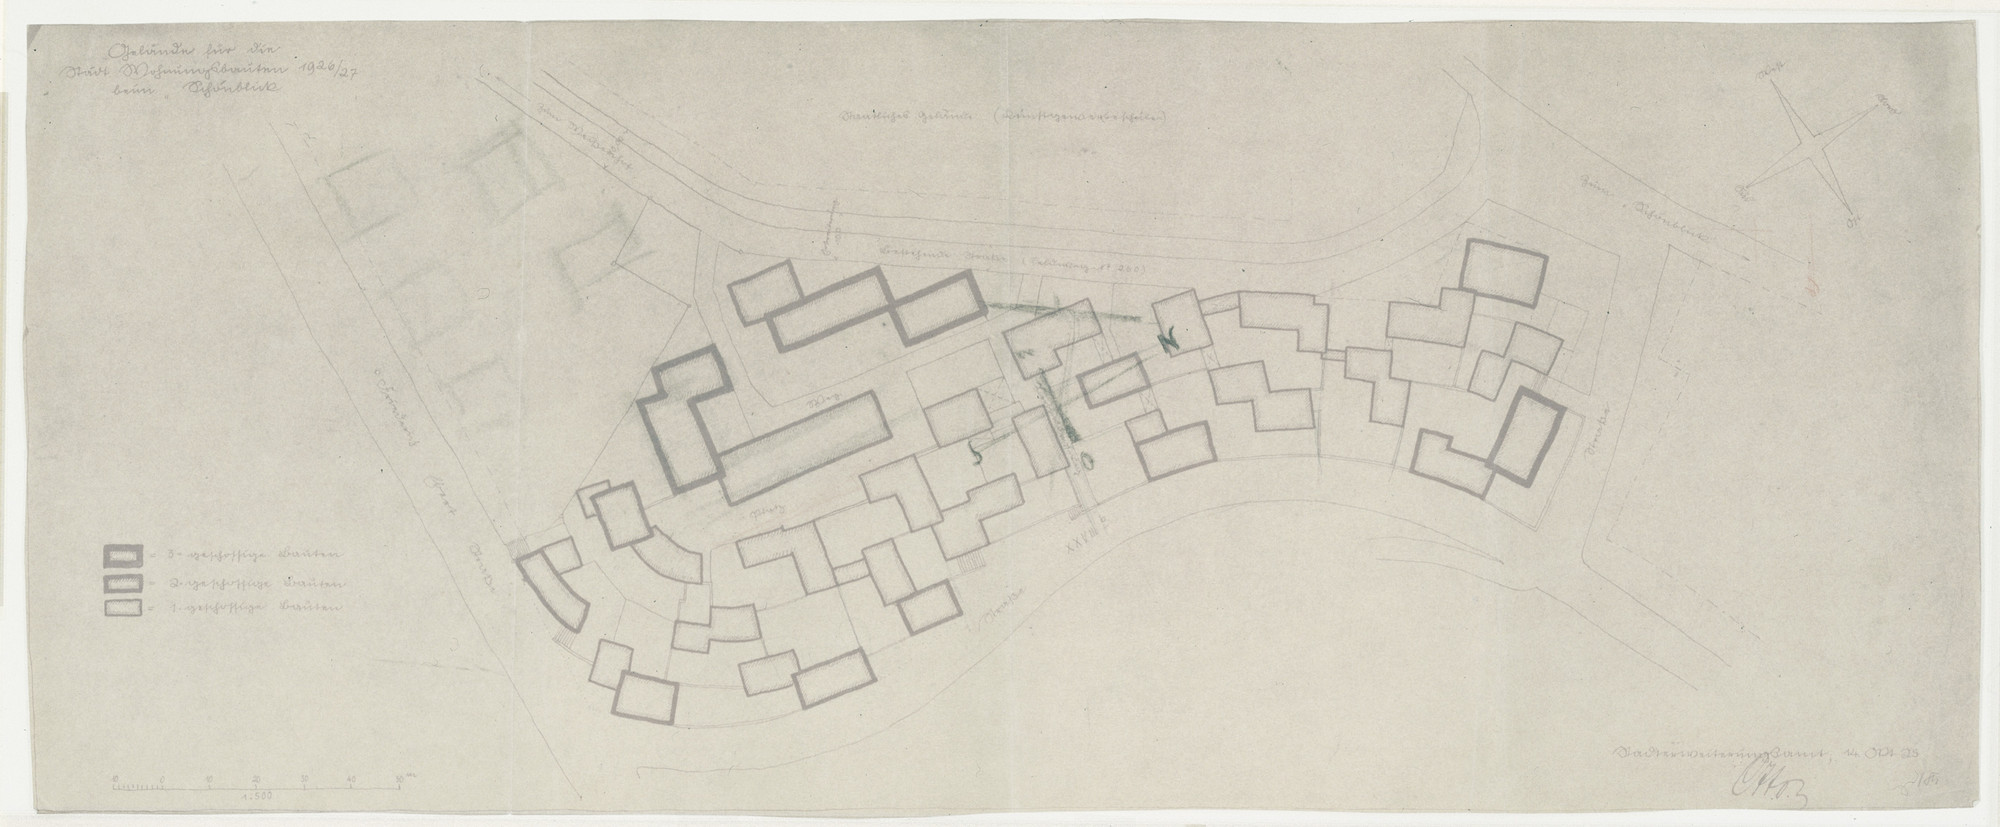 "Ludwig Mies van der Rohe. Weissenhof Housing Colony Master Plan, ""The Dwelling,"" Stuttgart, Germany (Plan). 1926-1927"